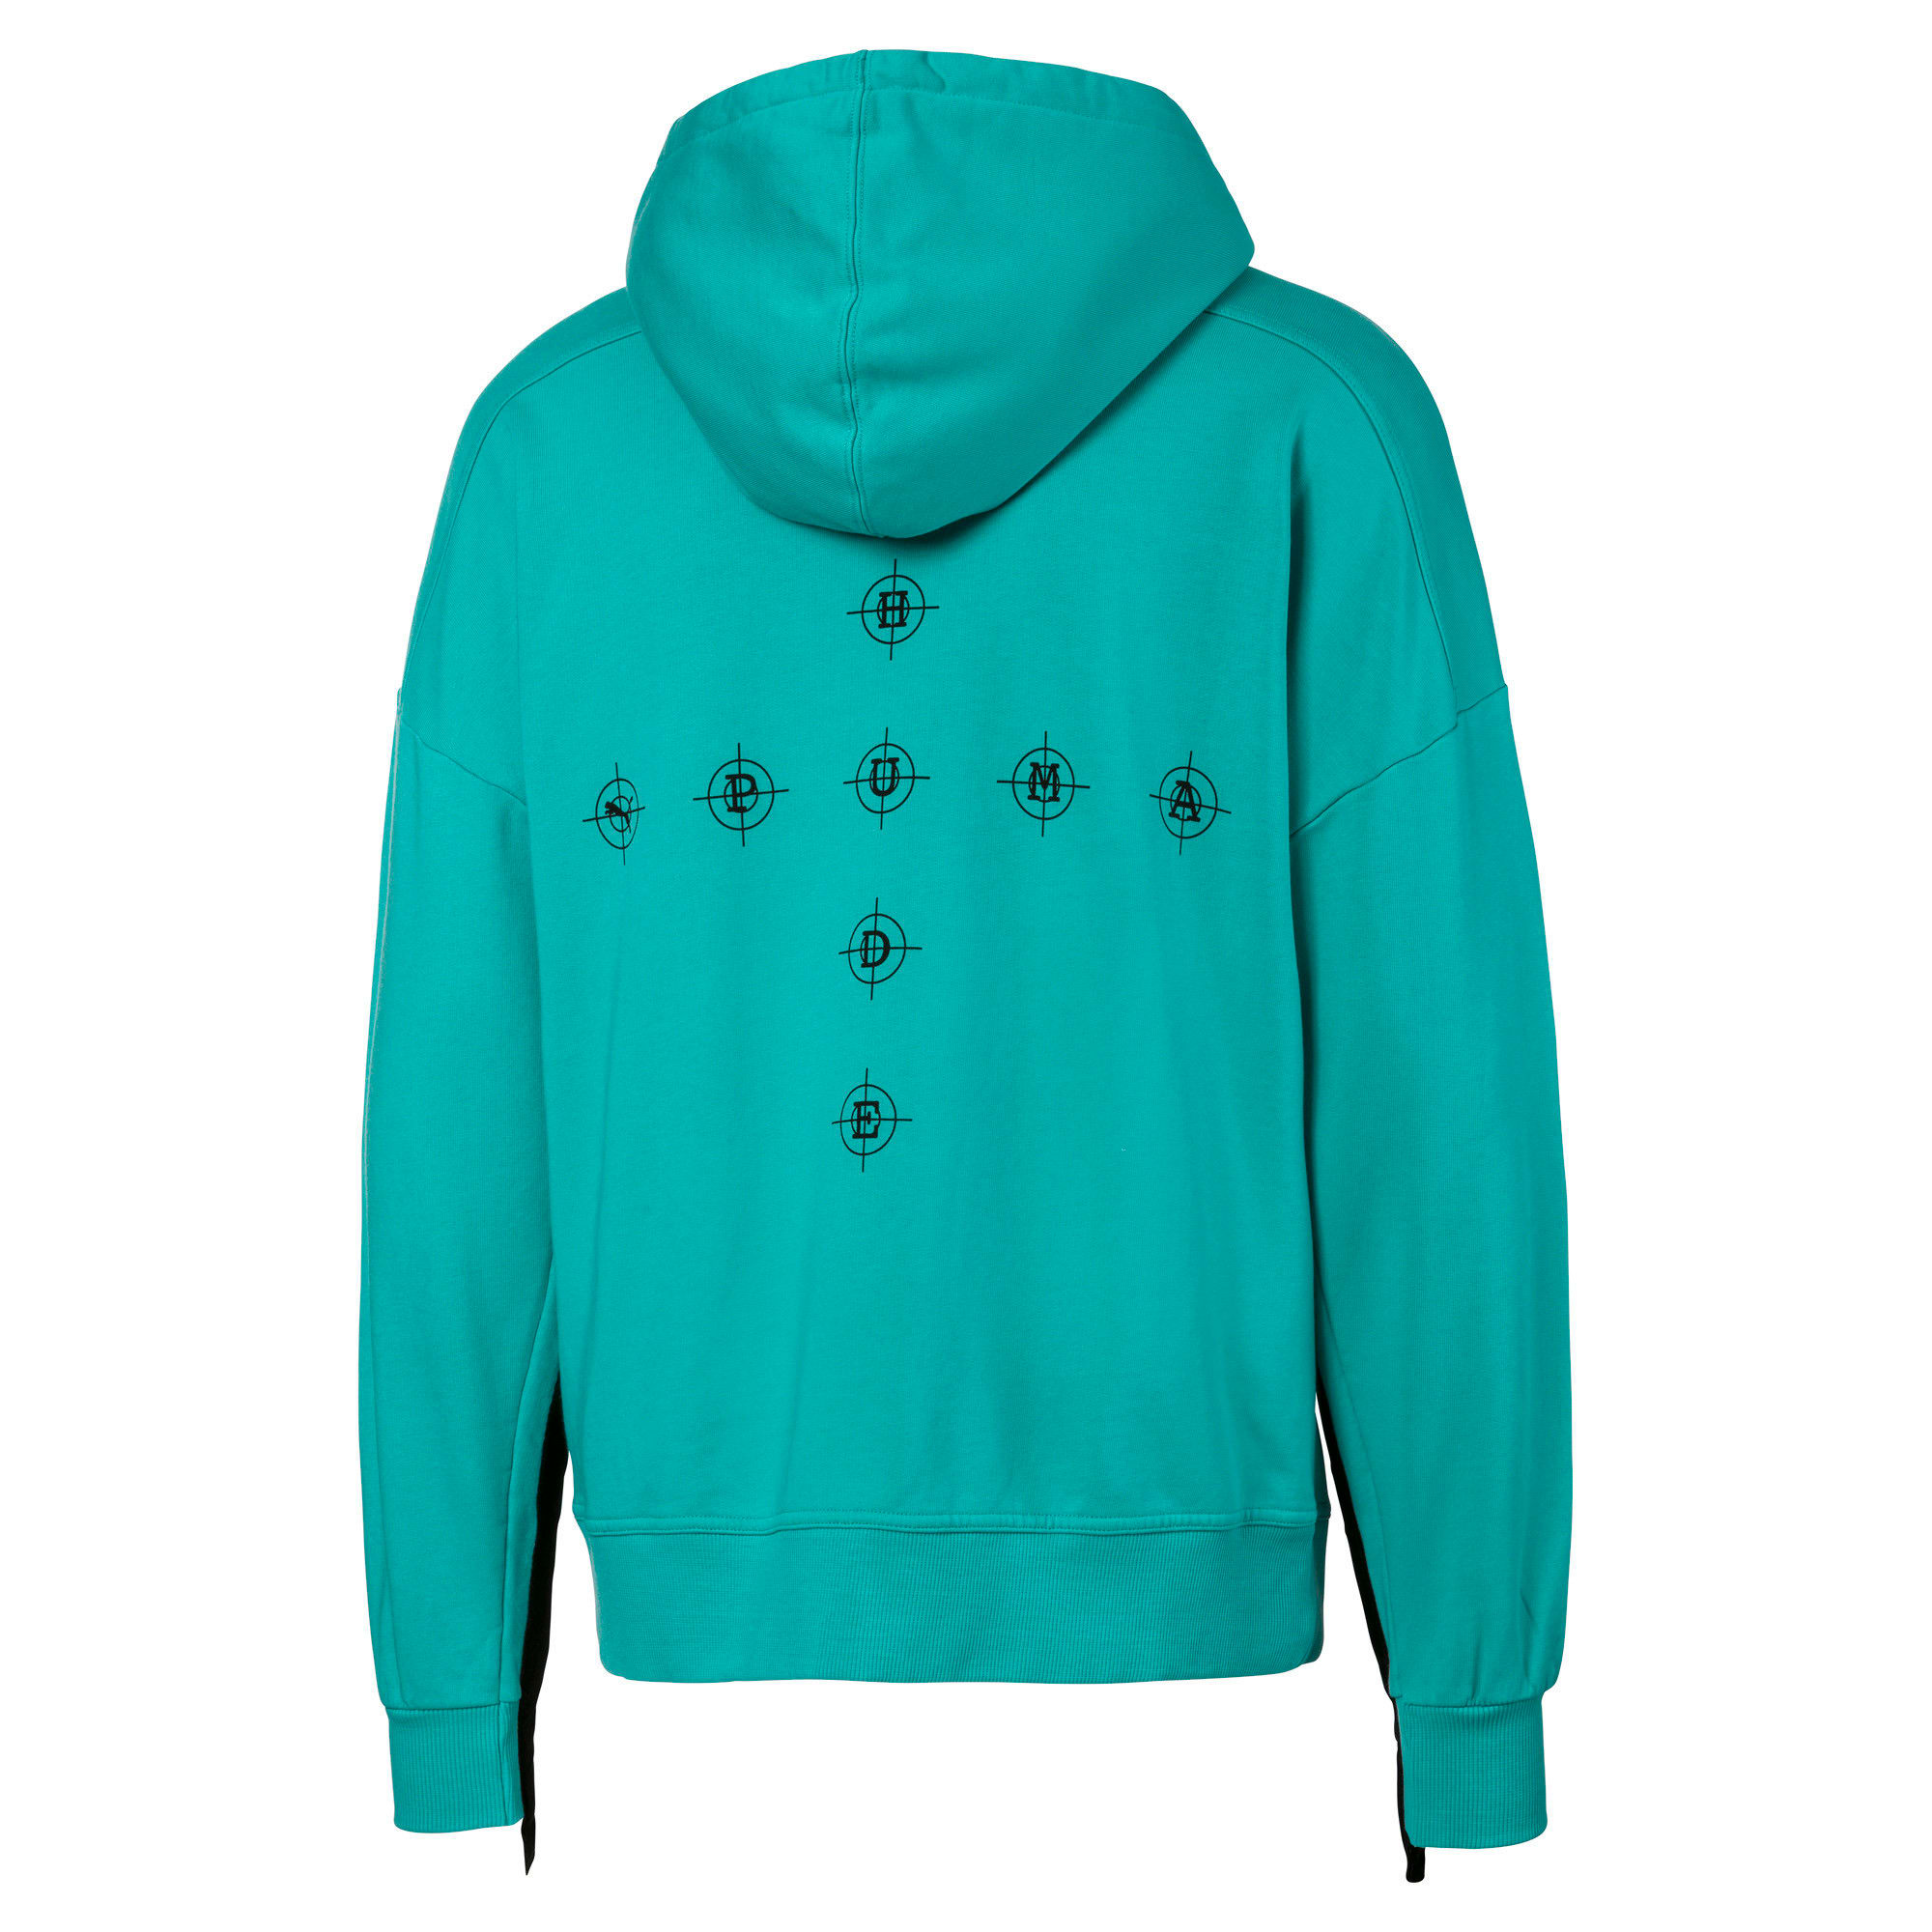 PUMA x RHUDE Men's Hoodie, Blue Turquoise, large